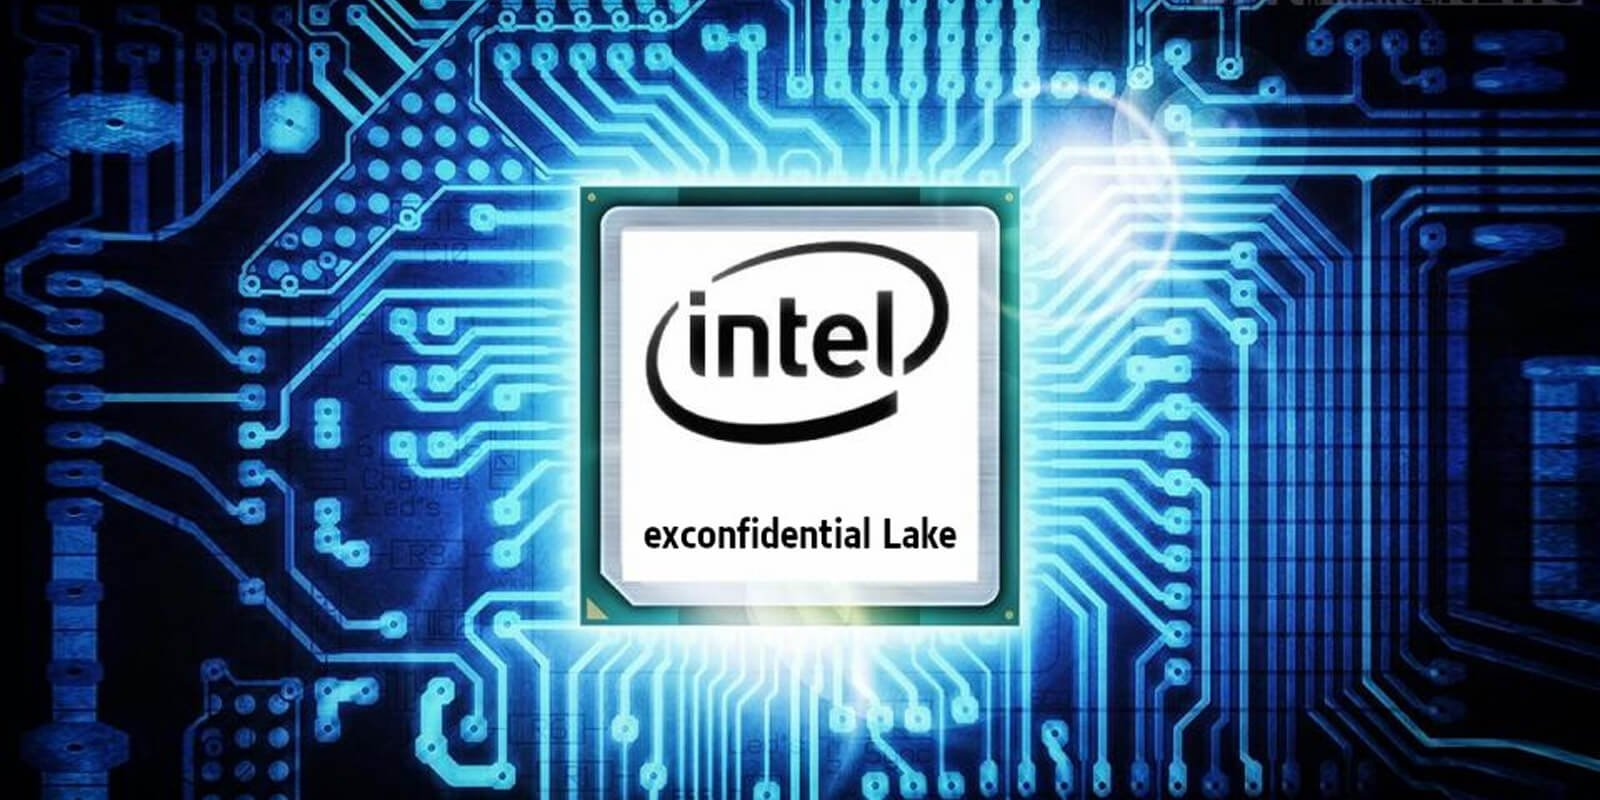 Intel Leak: 20GB Of Source Code, Internal Docs From Alleged Breach